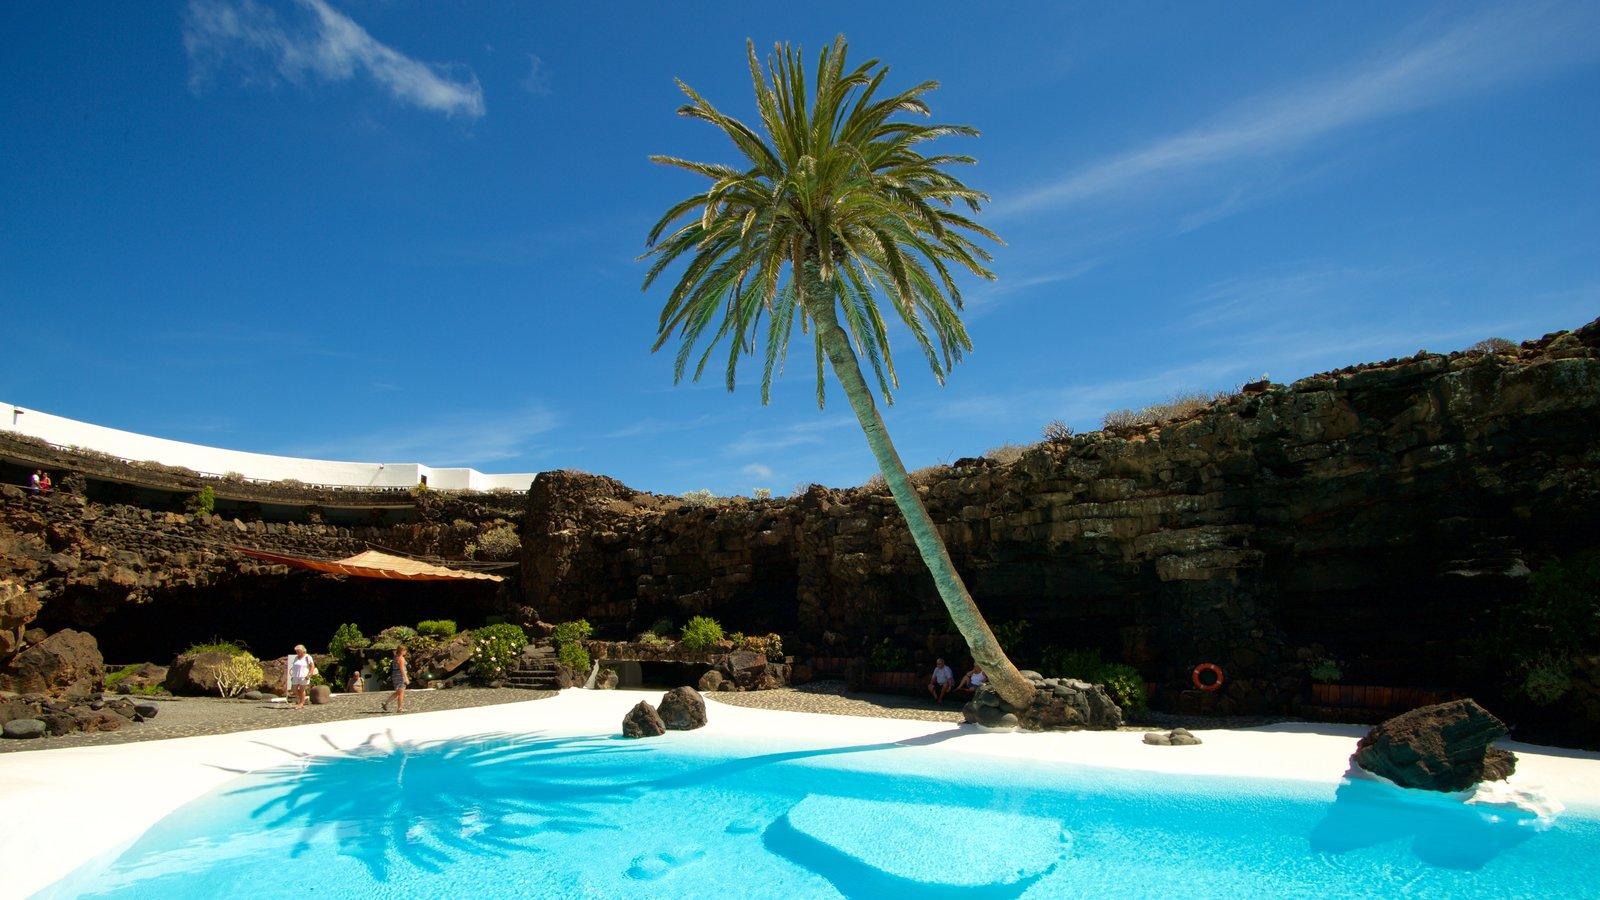 Jameos del Agua showing a pool and tropical scenes